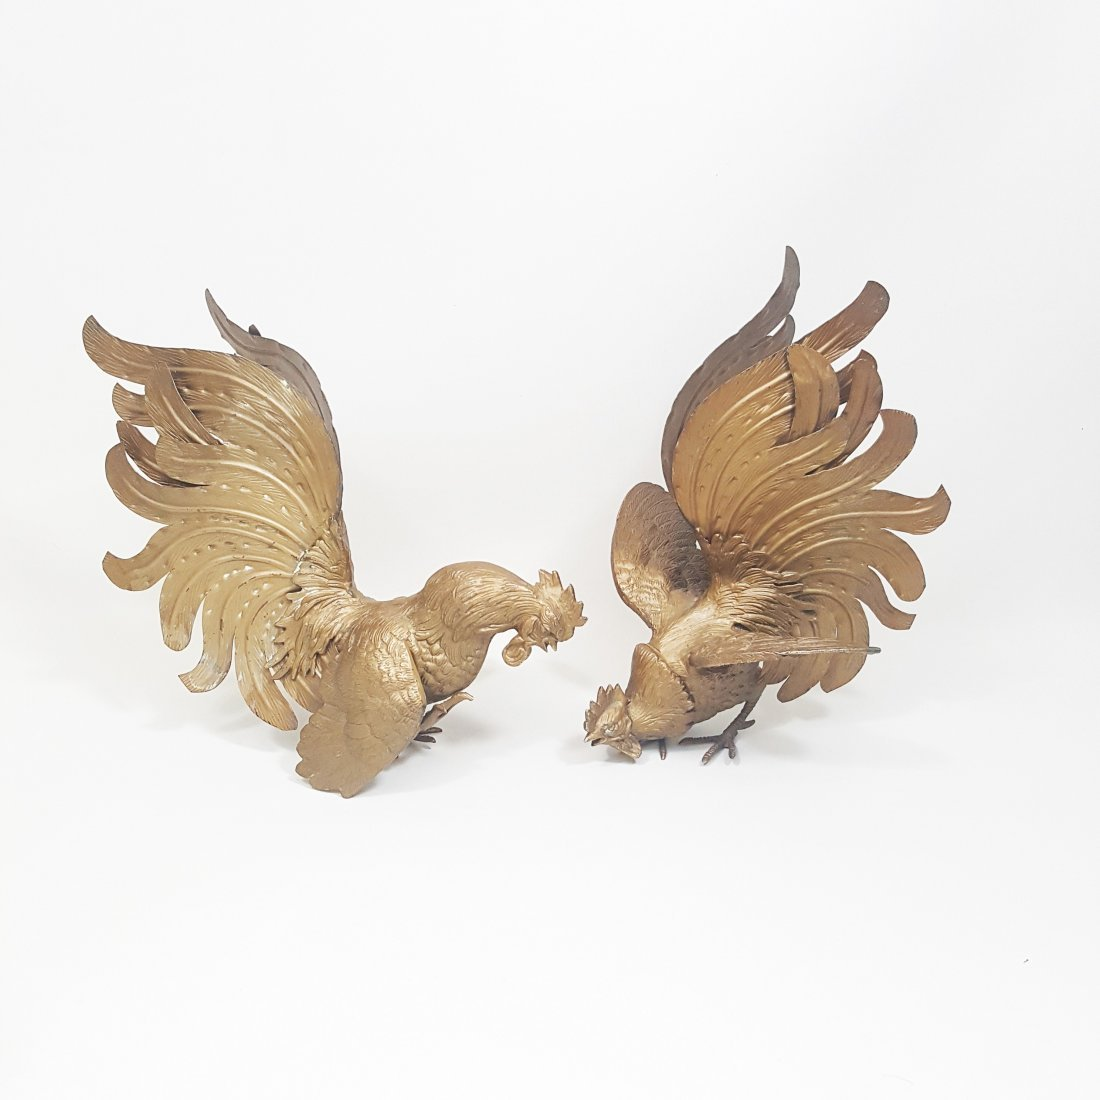 A pair of bronze roosters in fighting position